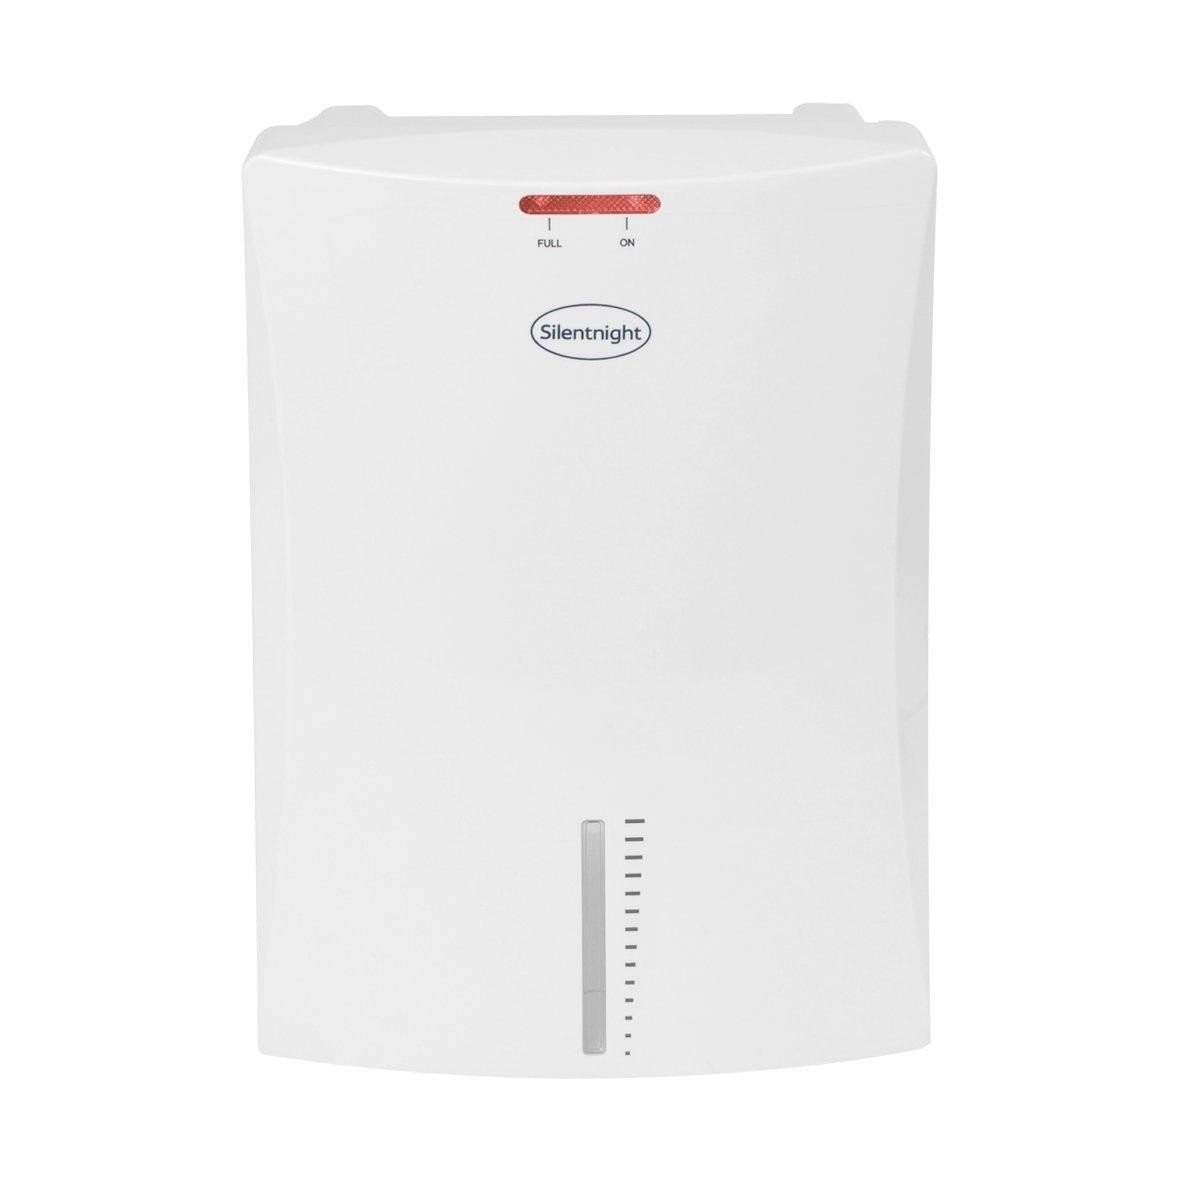 silentnight-38040-dehumidifier.jpg